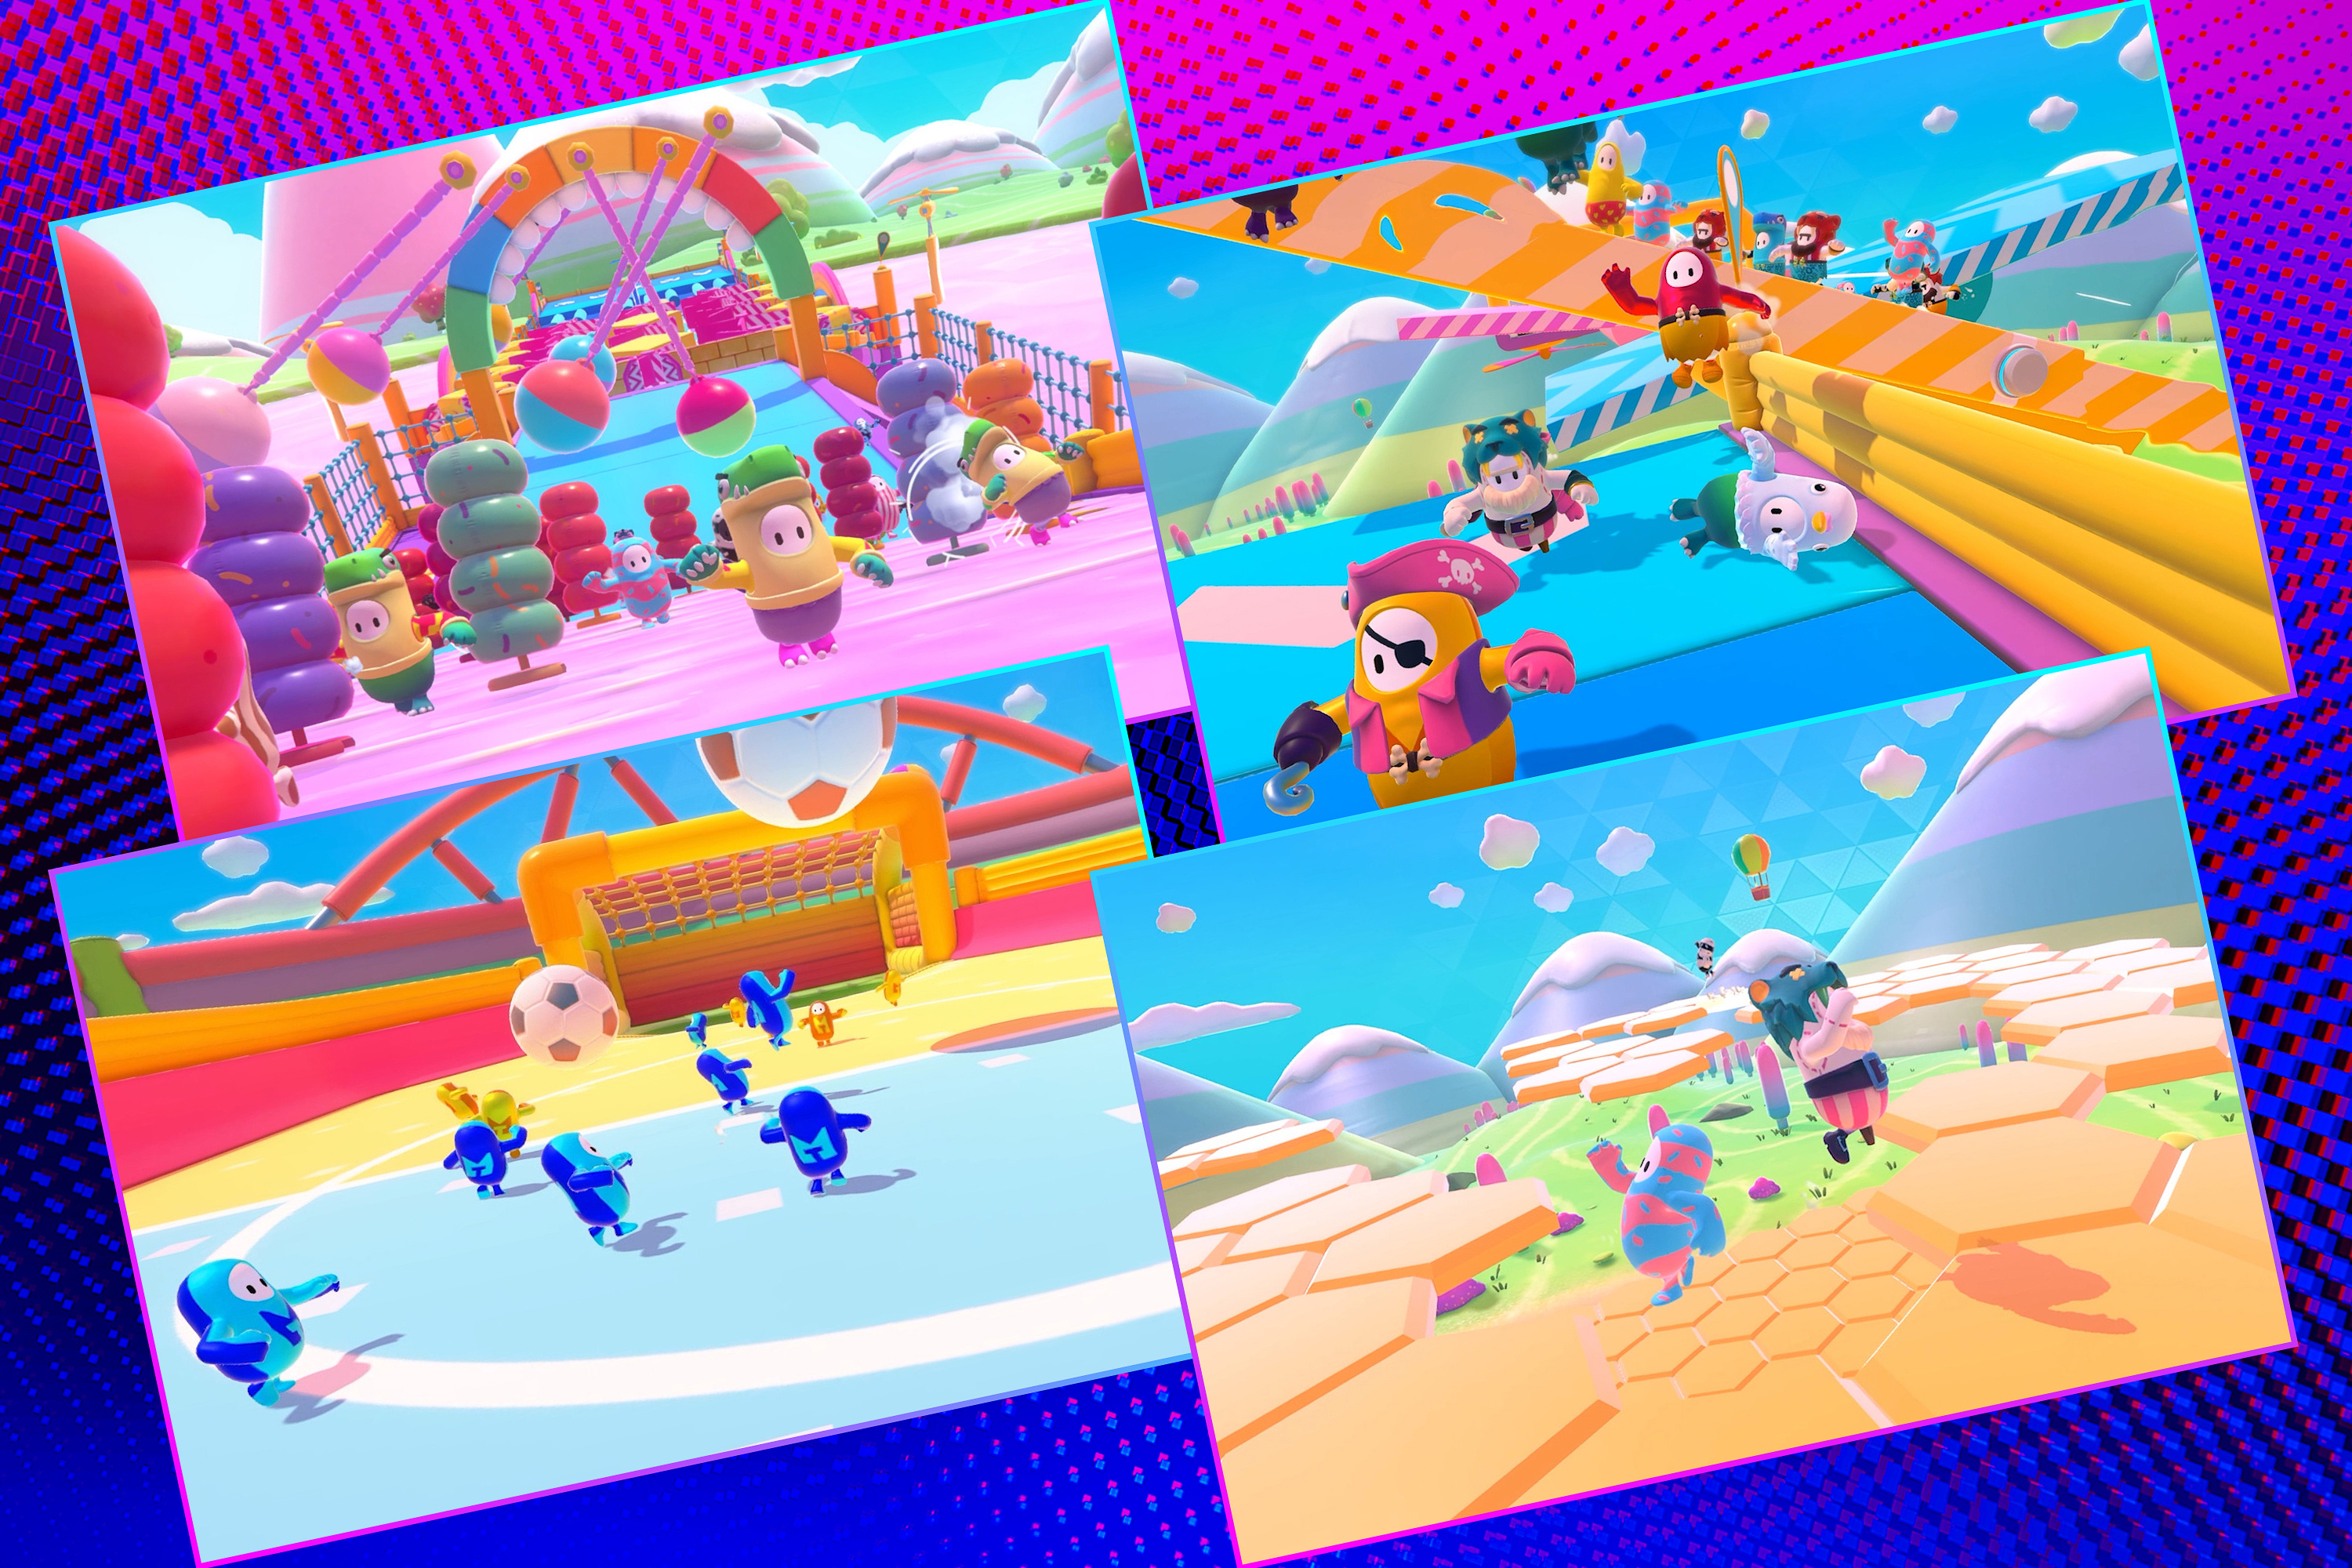 Graphic grid of four rectangles on bright purple blue background with various screen images from the Fall Guys video game